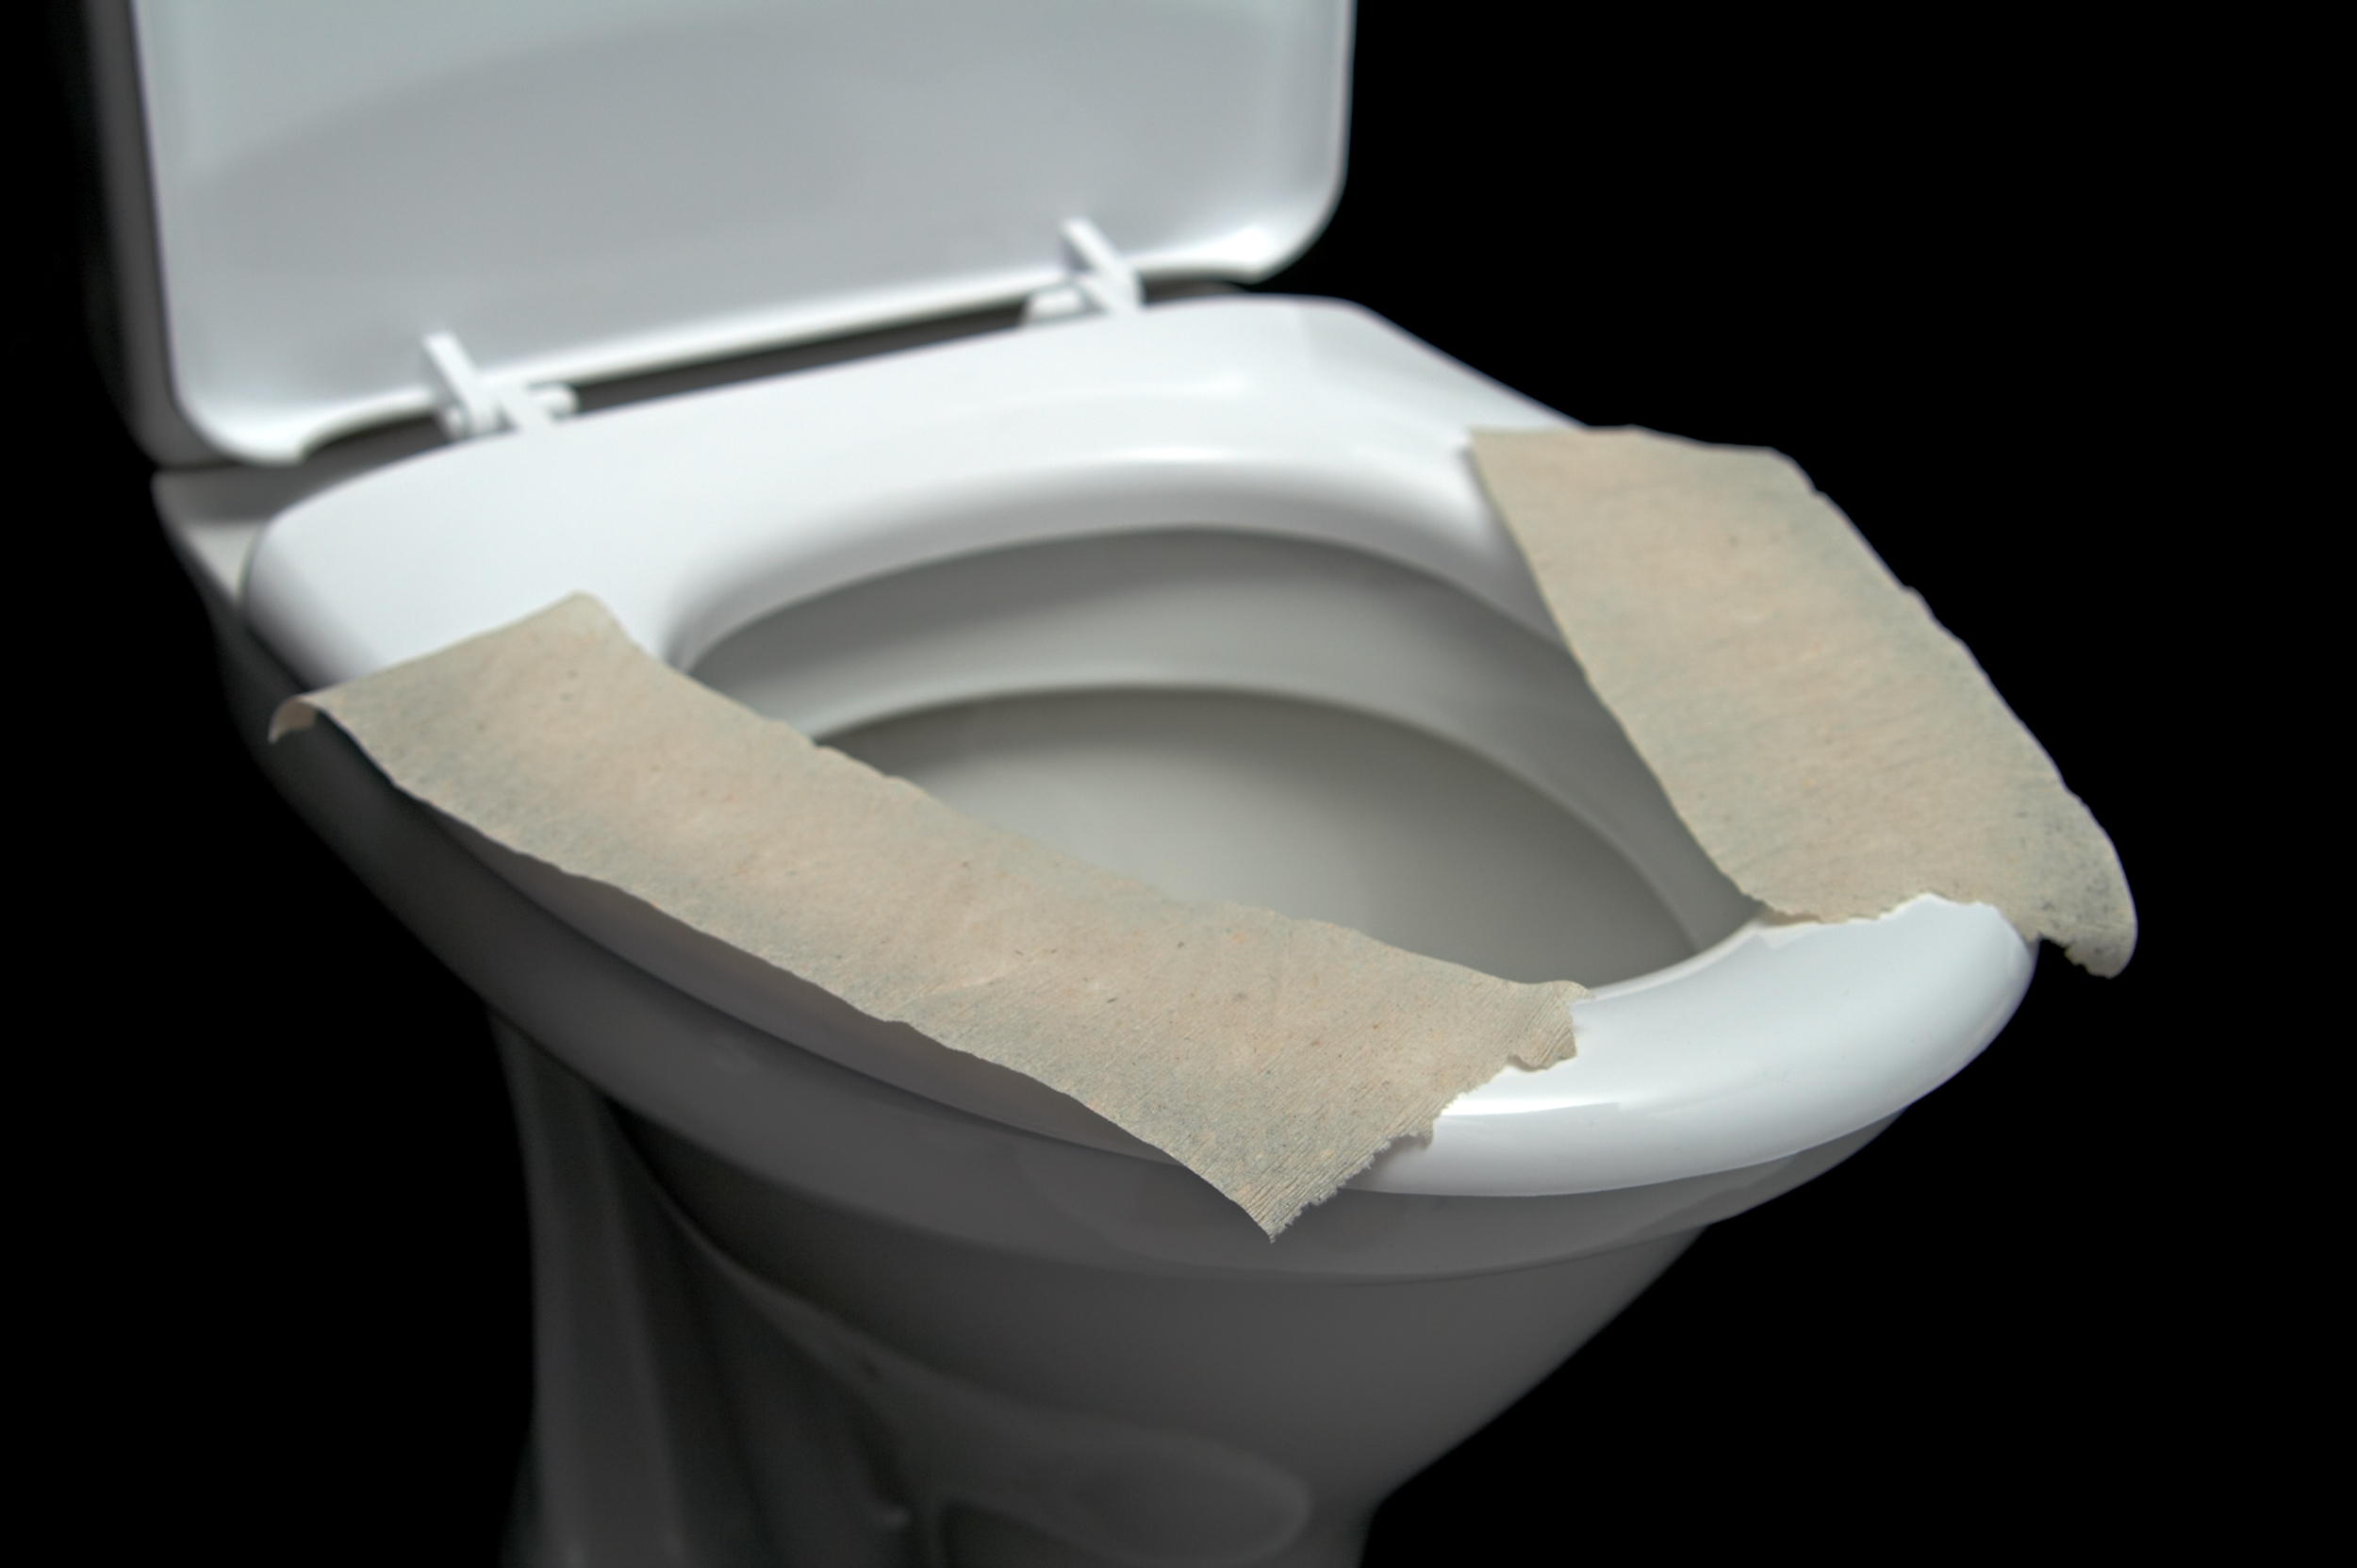 Awe Inspiring Toilet Seat Covers Dont Protect Against Germs And Bacteria Cjindustries Chair Design For Home Cjindustriesco